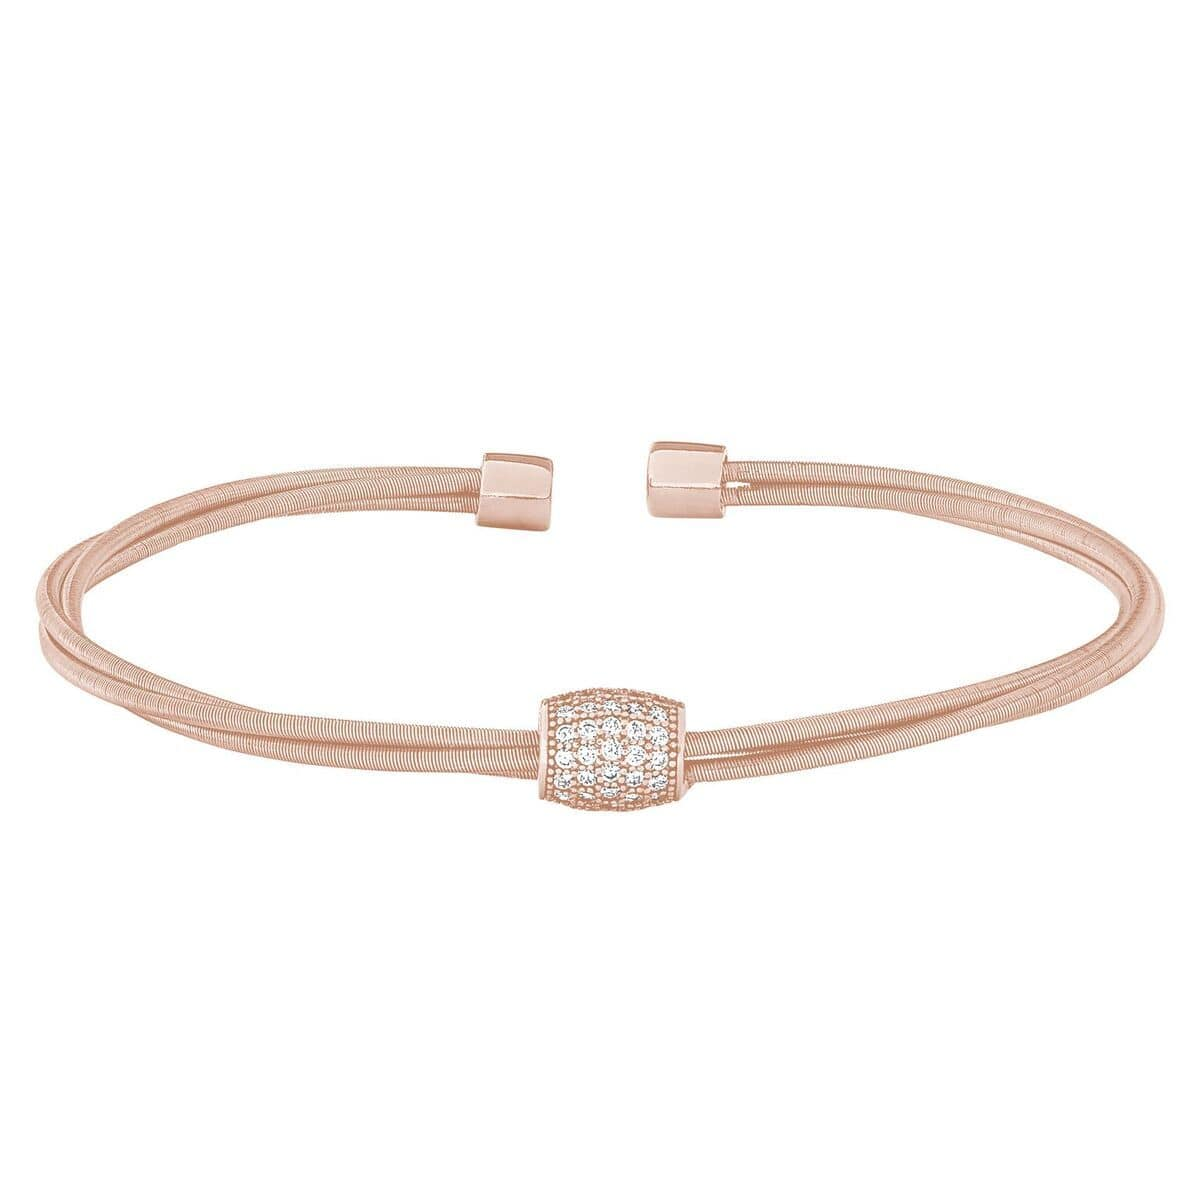 Rose Gold Finish Sterling Silver Three Cable Cuff Bracelet - LL7062B-RG-Kelly Waters-Renee Taylor Gallery